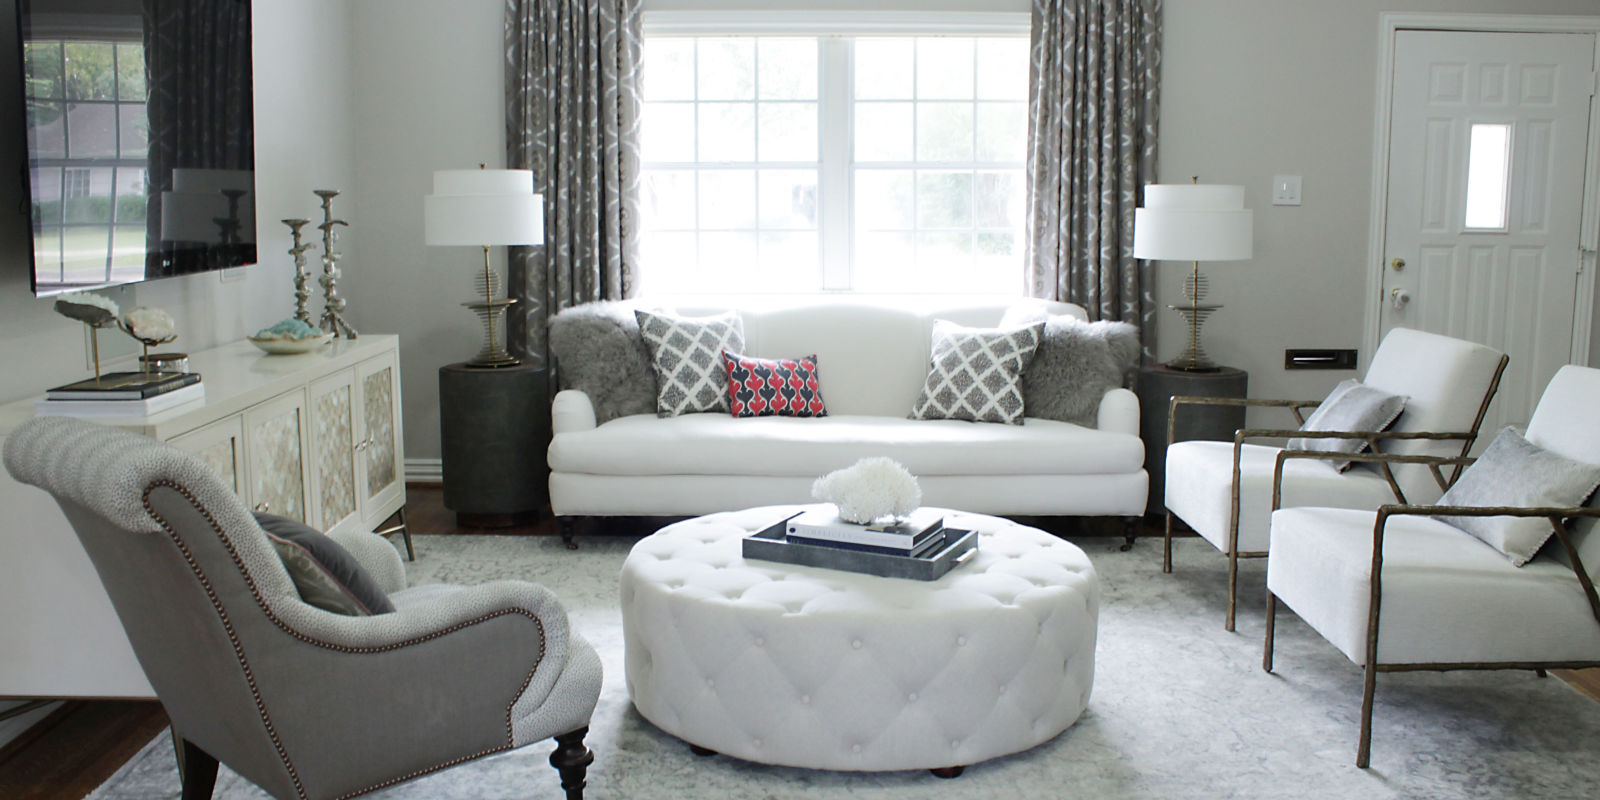 living room makeovers on a budget before amp after an budget friendly living room 24974